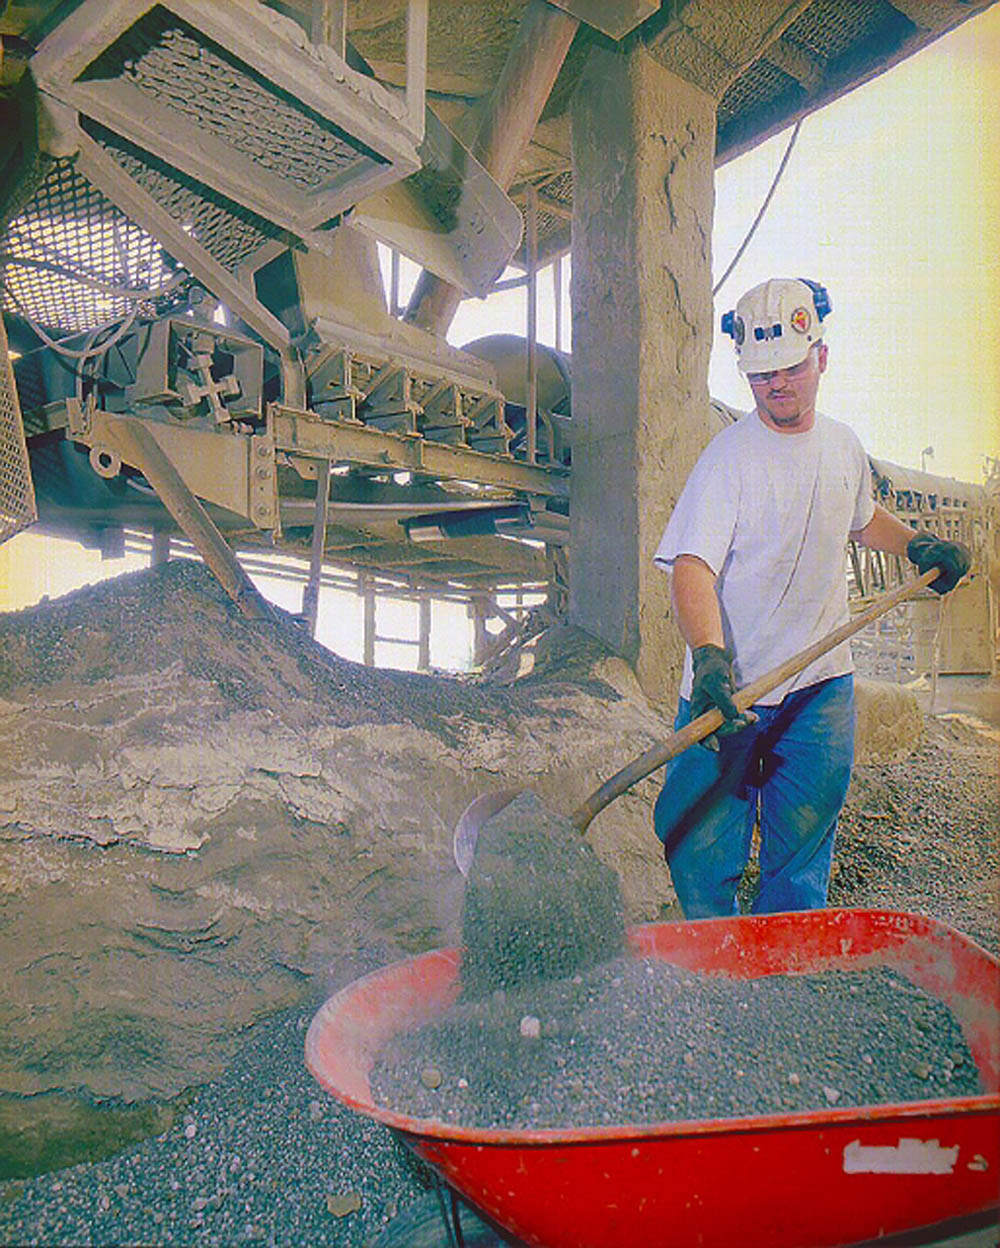 Cleanup brings workers within close proximity of a moving conveyor